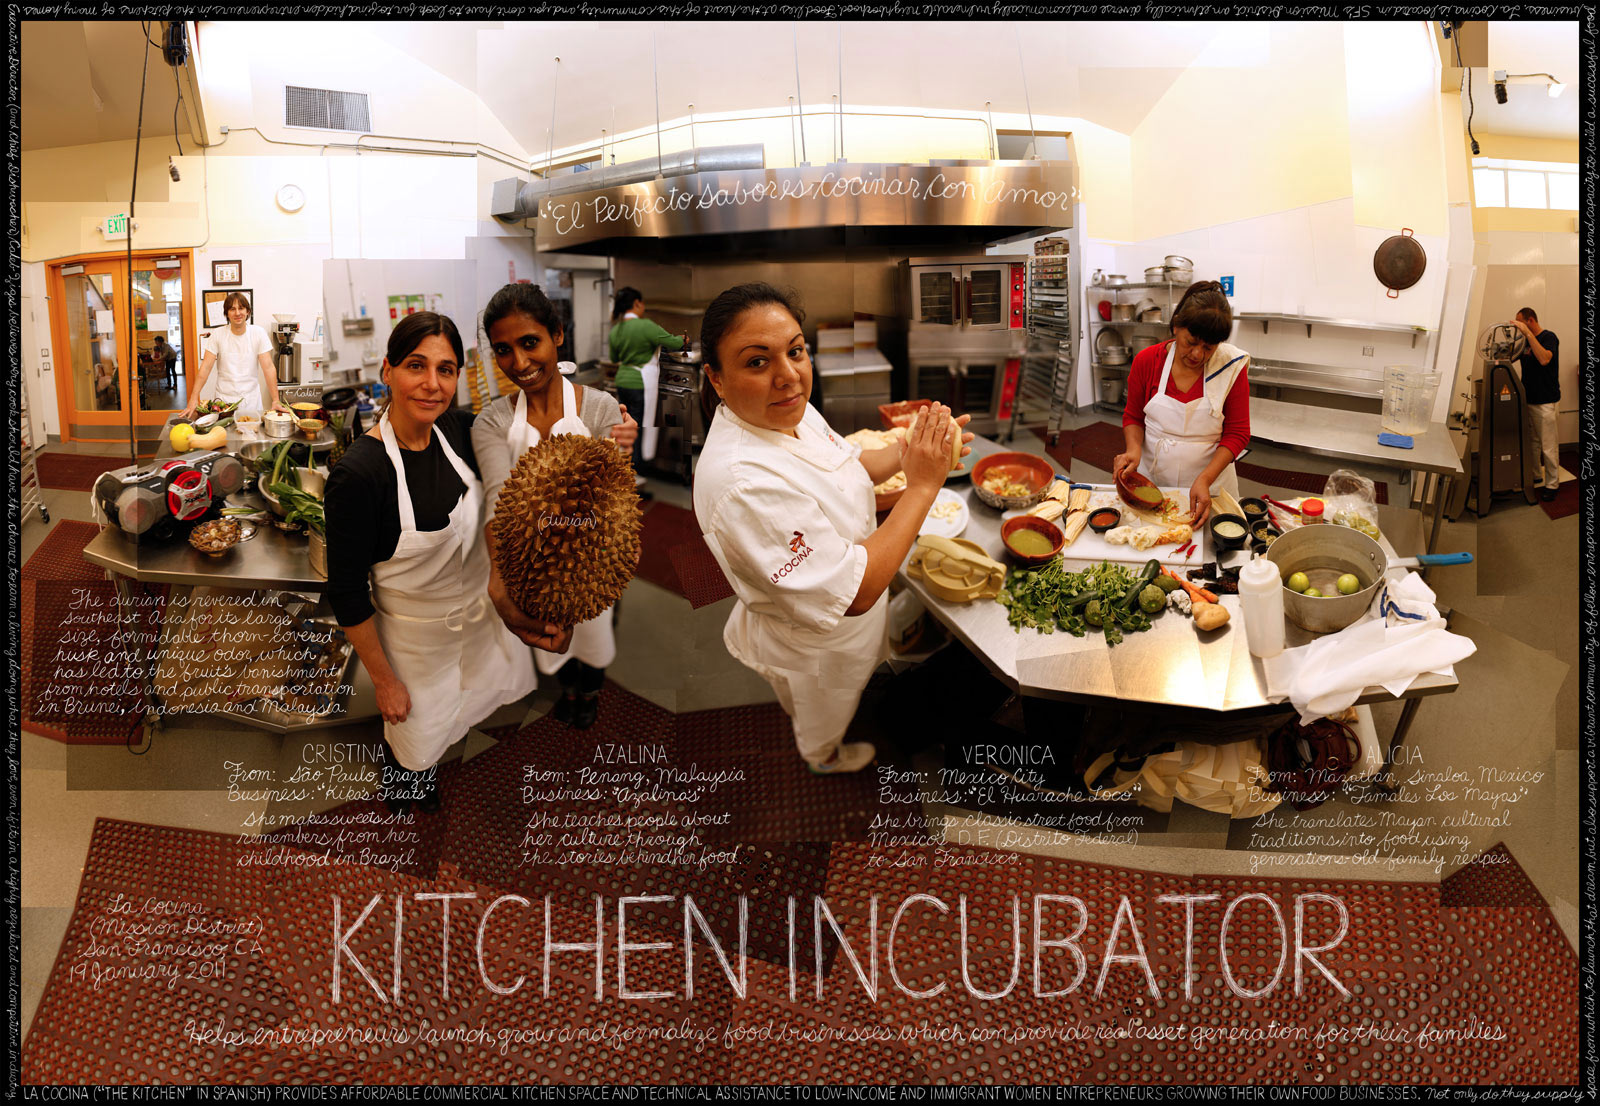 """""""Kitchen Incubator"""". Caleb Zigas, La Cocina. San Francisco, CA. Credit: Information artwork by Douglas Gayeton. From the Lexicon of Sustainability project."""